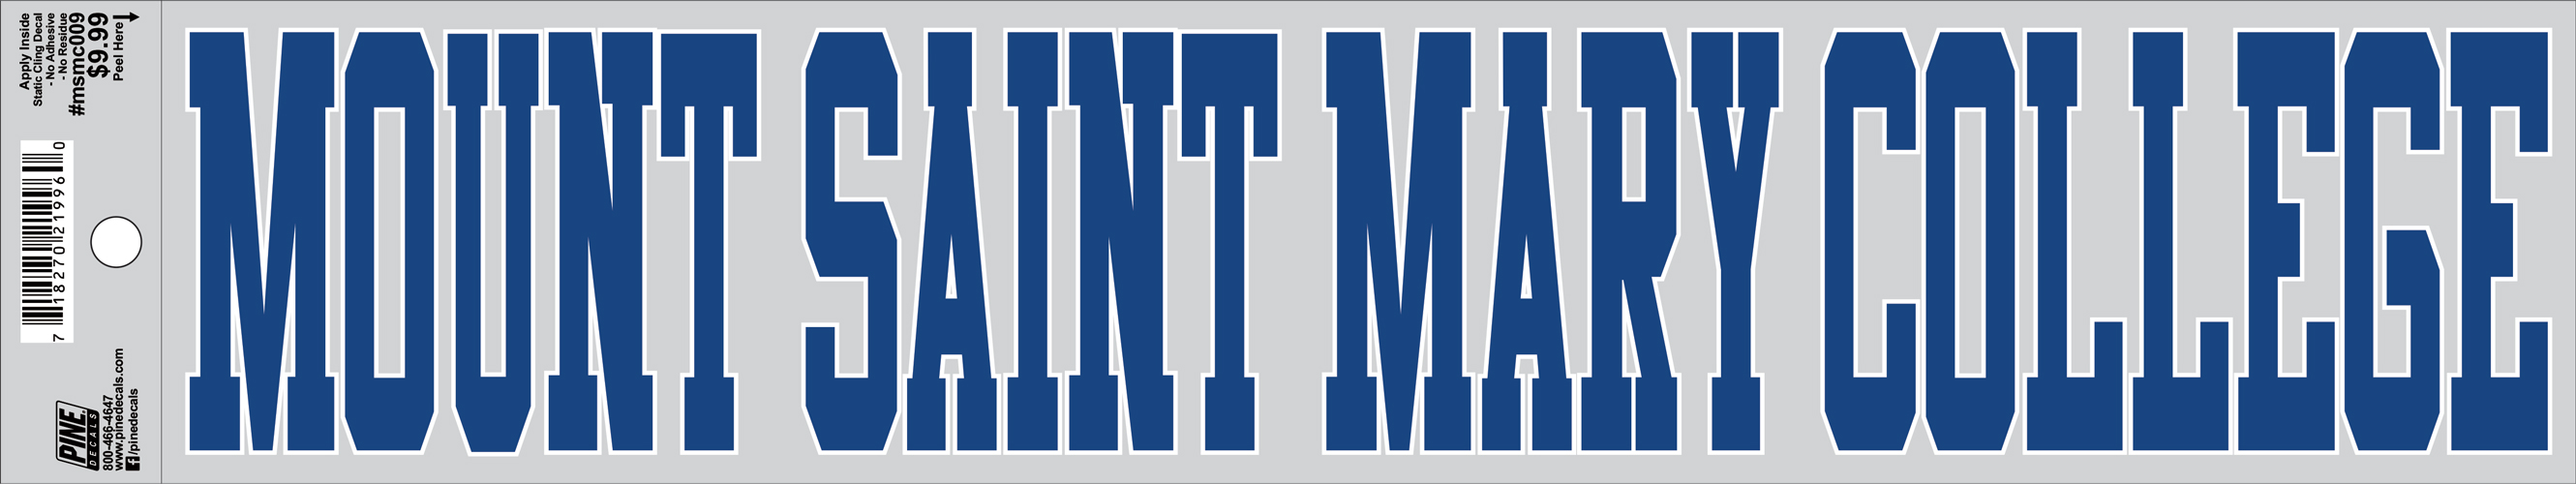 Decal - Mount Saint Mary College